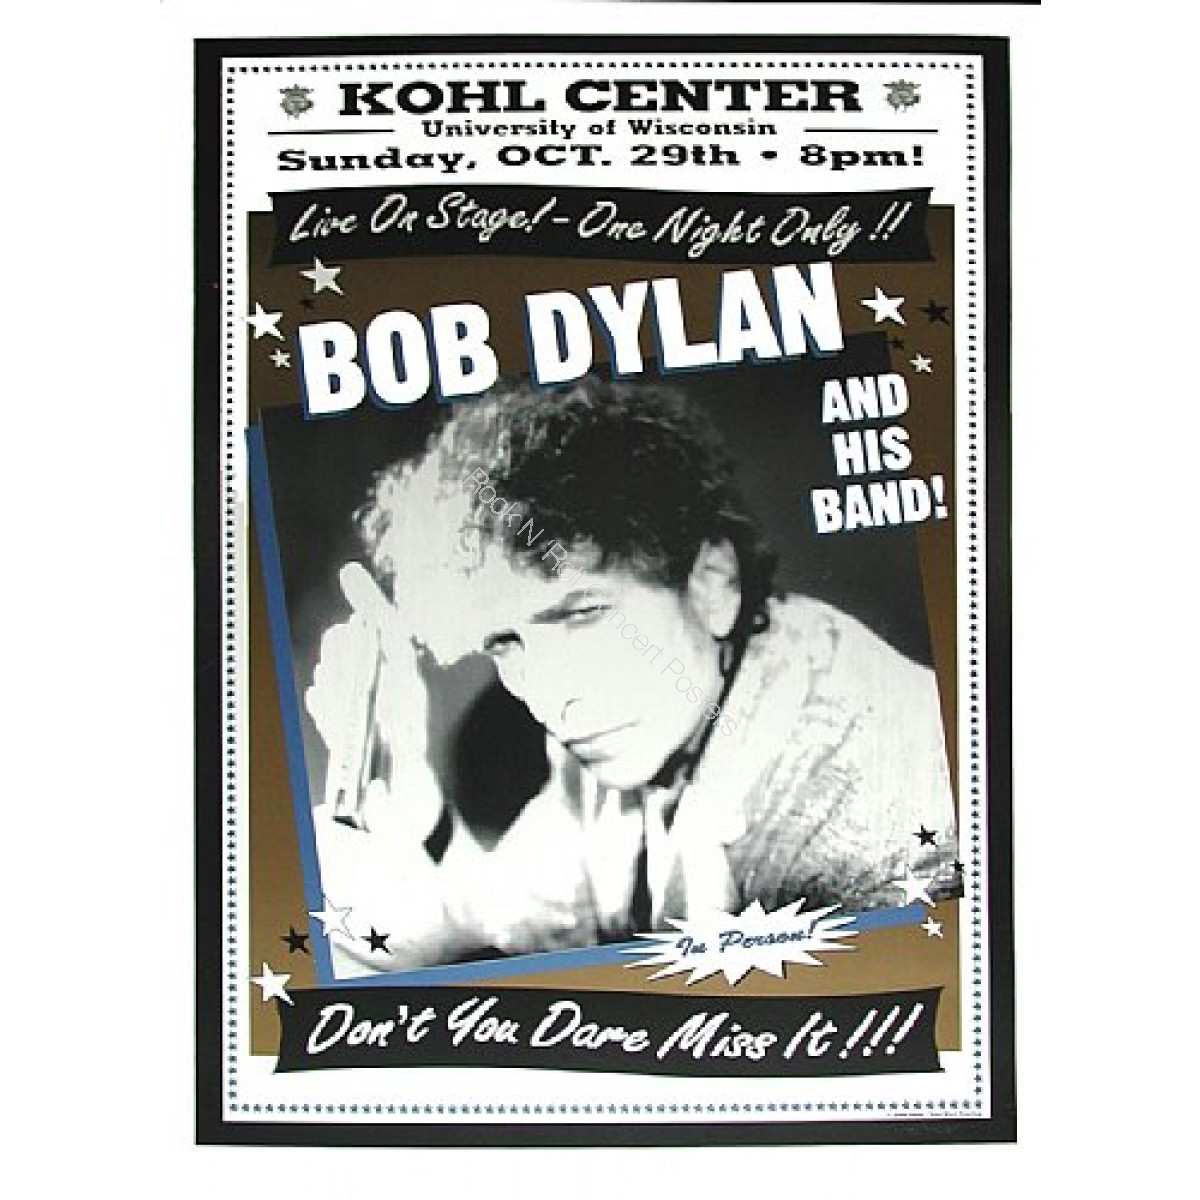 Bob Dylan & His Band The Kohl Center